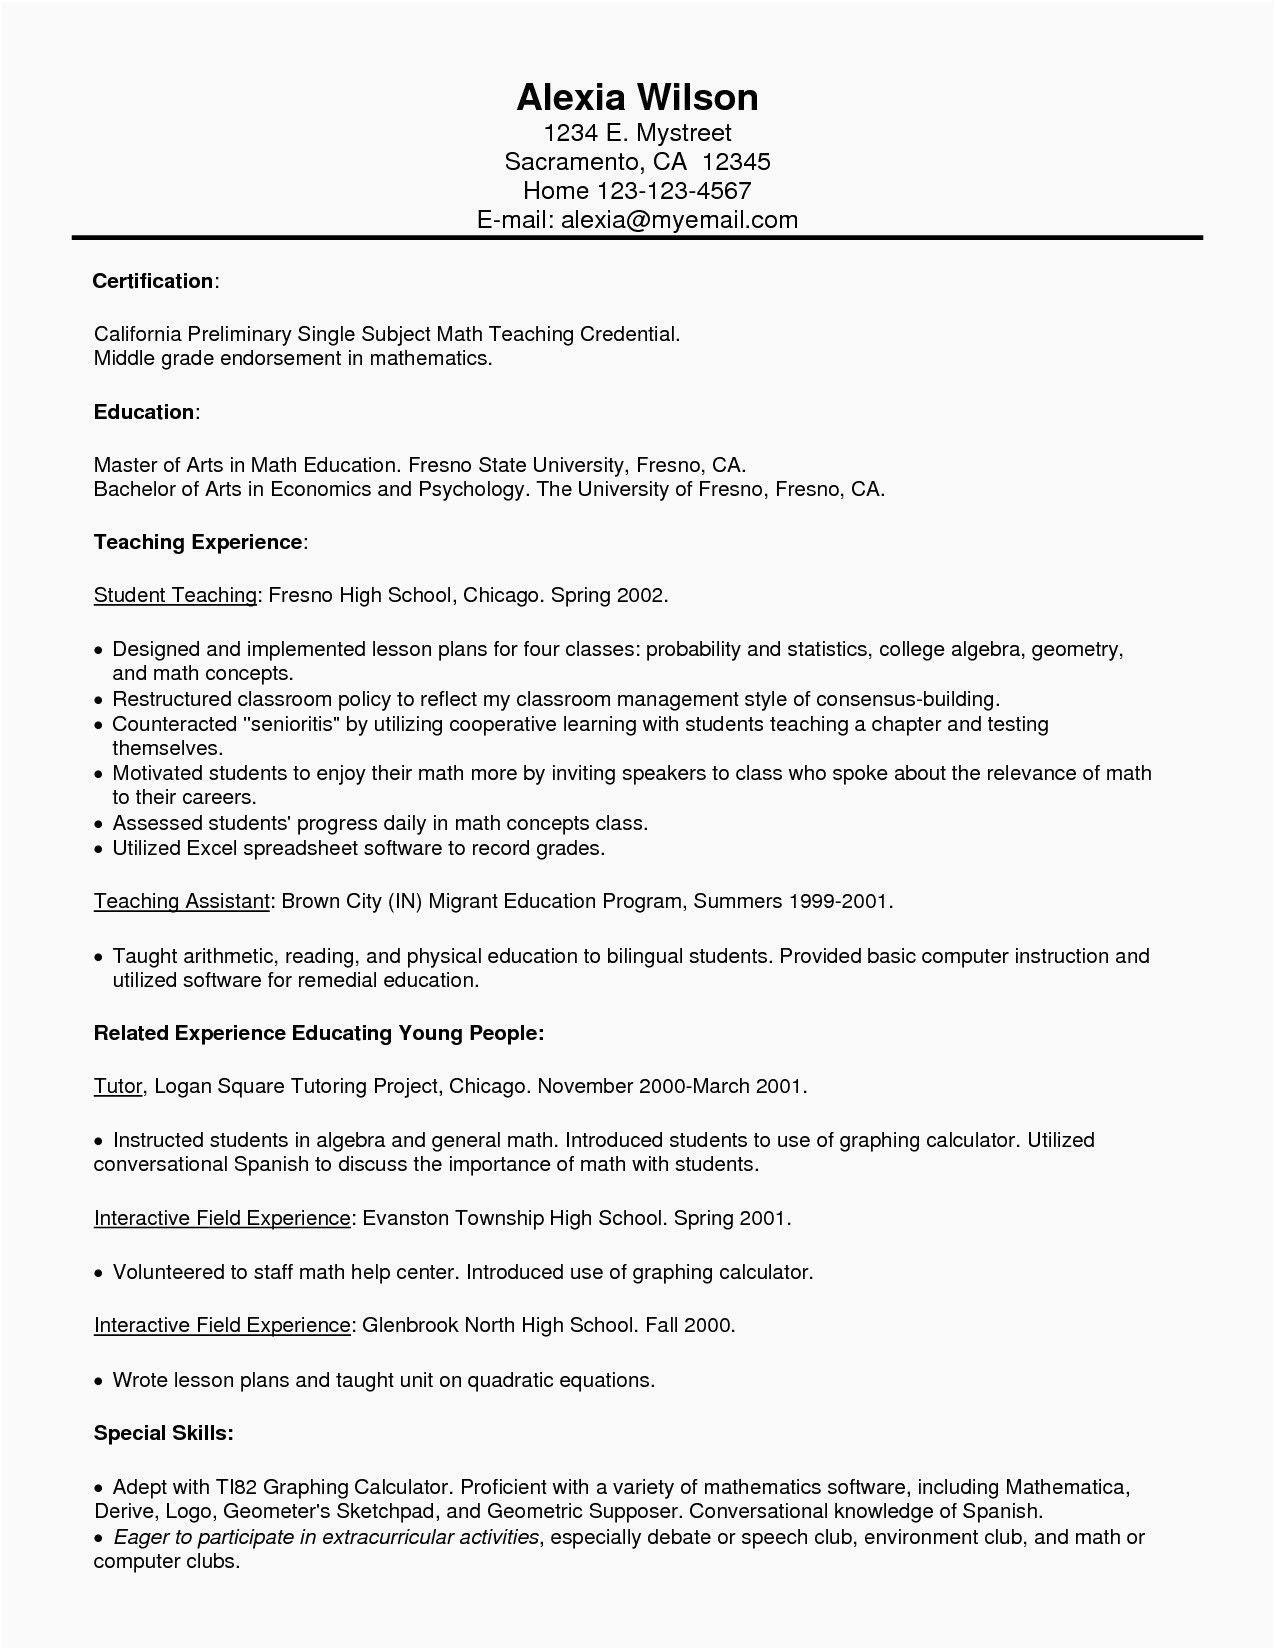 3 Math Geometry sample resume for master teacher new